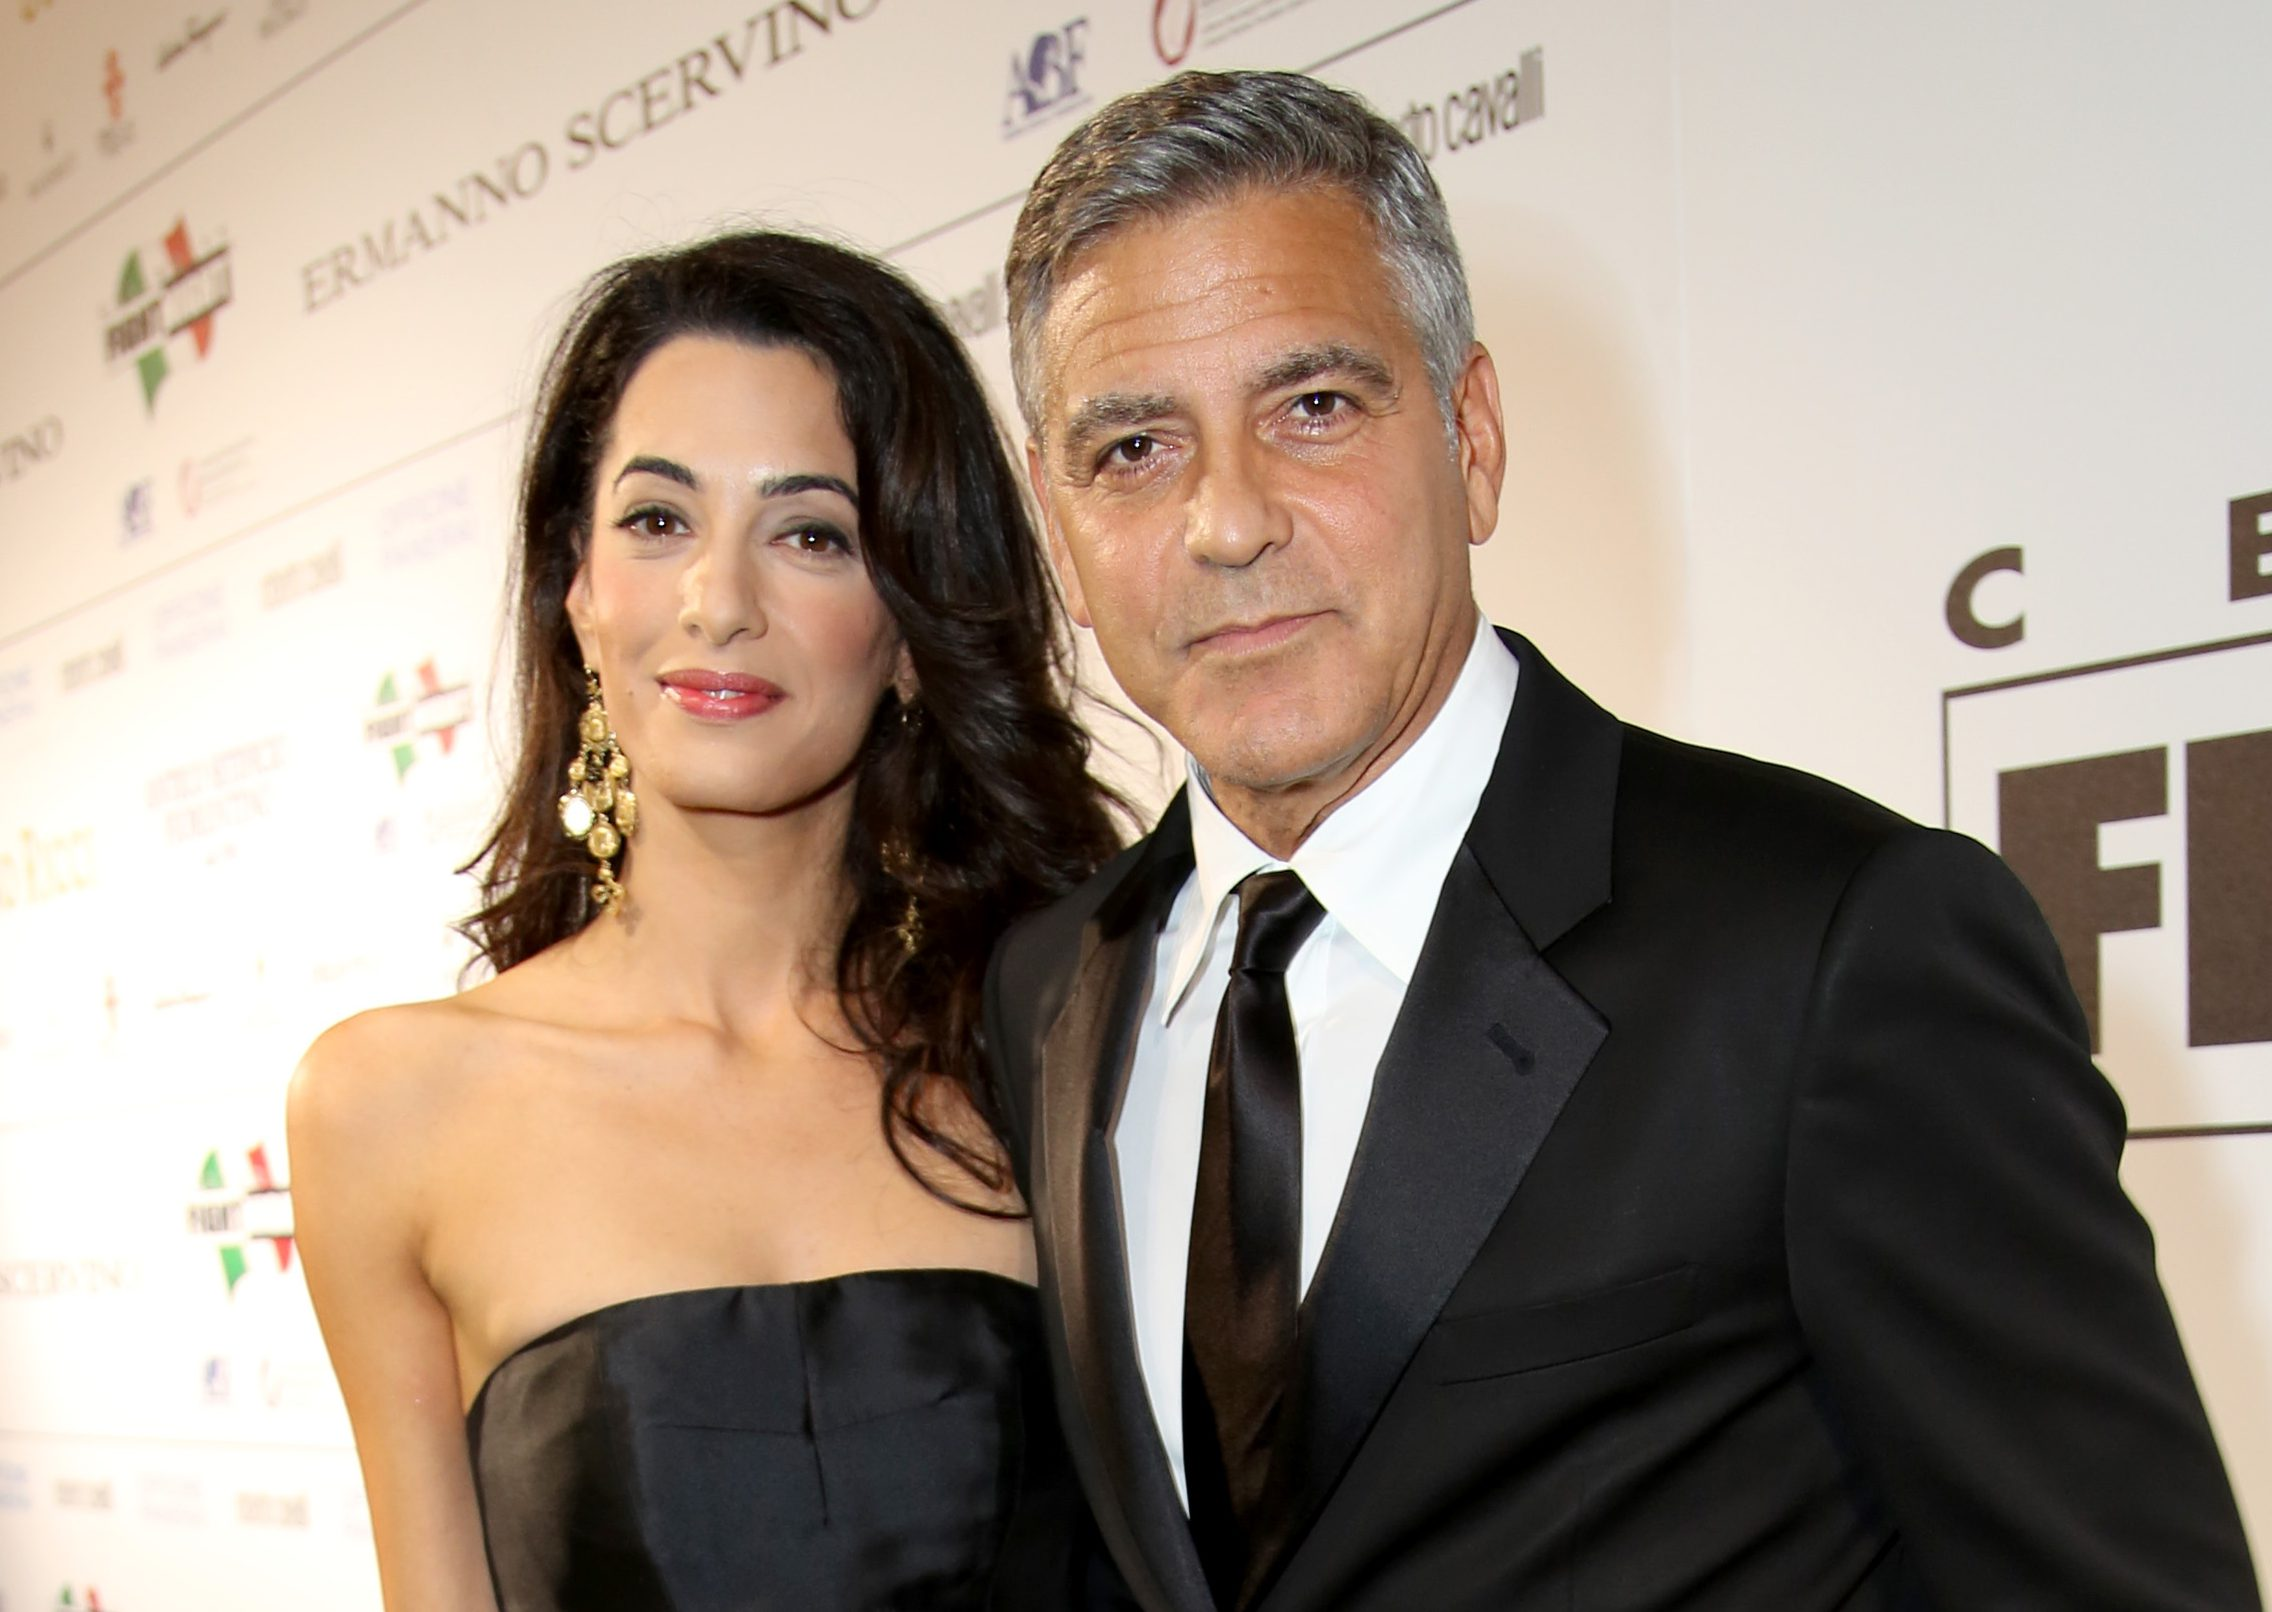 FLORENCE, ITALY - SEPTEMBER 07: George Clooney (R) and Amal Alamuddin attend the Celebrity Fight Night gala celebrating Celebrity Fight Night In Italy benefitting The Andrea Bocelli Foundation and The Muhammad Ali Parkinson Center on September 7, 2014 in Florence, Italy. (Photo by Rachel Murray/Getty Images for Celebrity Fight Night)